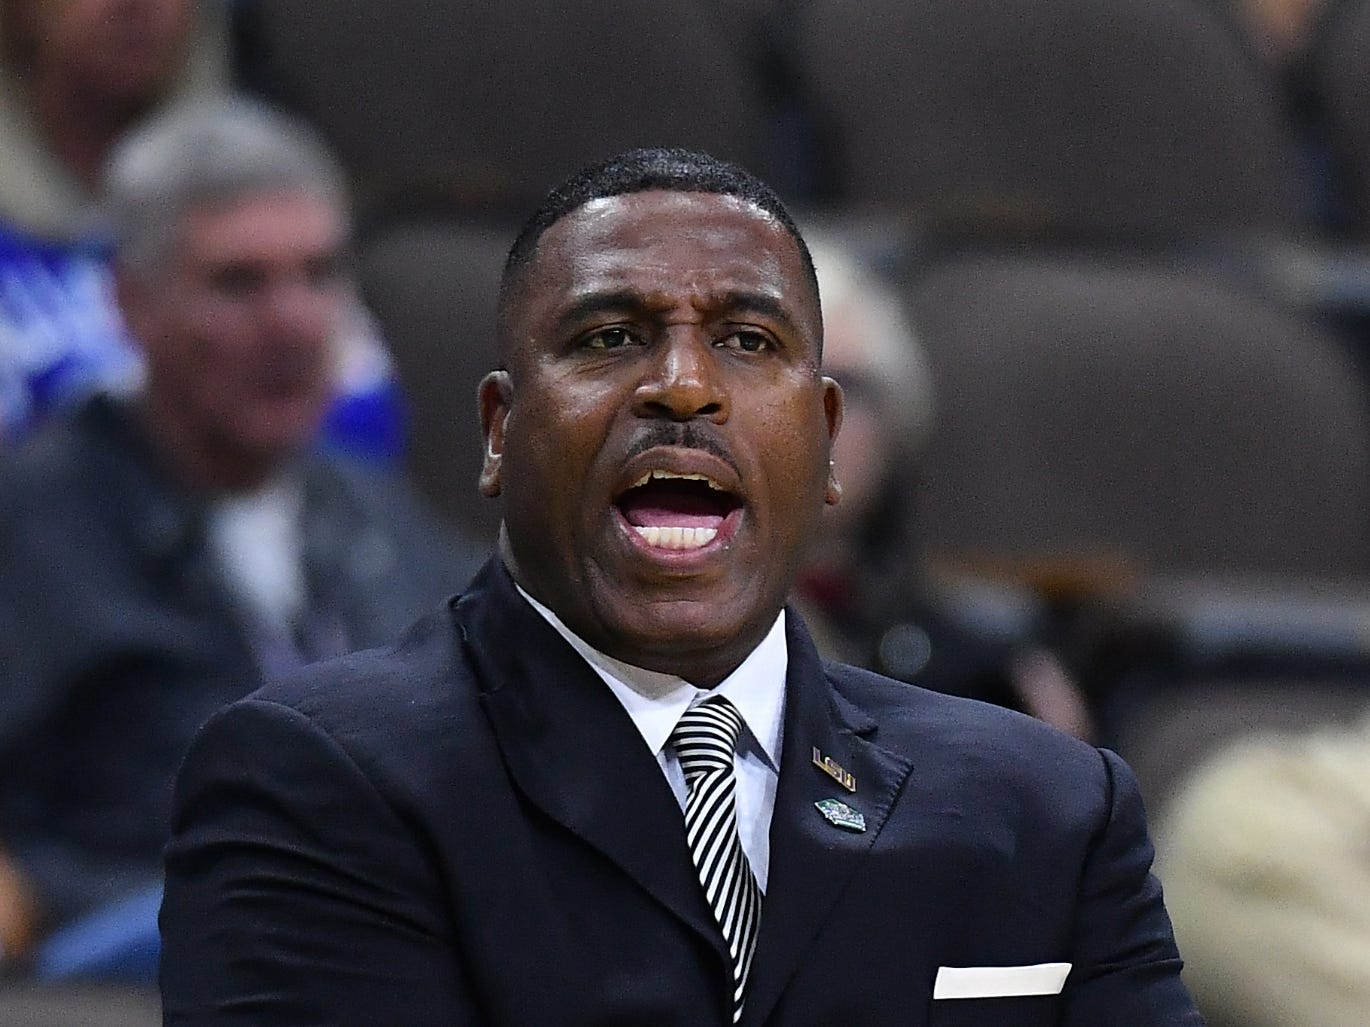 Mar 21, 2019; Jacksonville, FL, USA; LSU Tigers interim head coach Tony Benford calls out to his players during the first half against the Yale Bulldogs in the first round of the 2019 NCAA Tournament at Jacksonville Veterans Memorial Arena. Mandatory Credit: John David Mercer-USA TODAY Sports